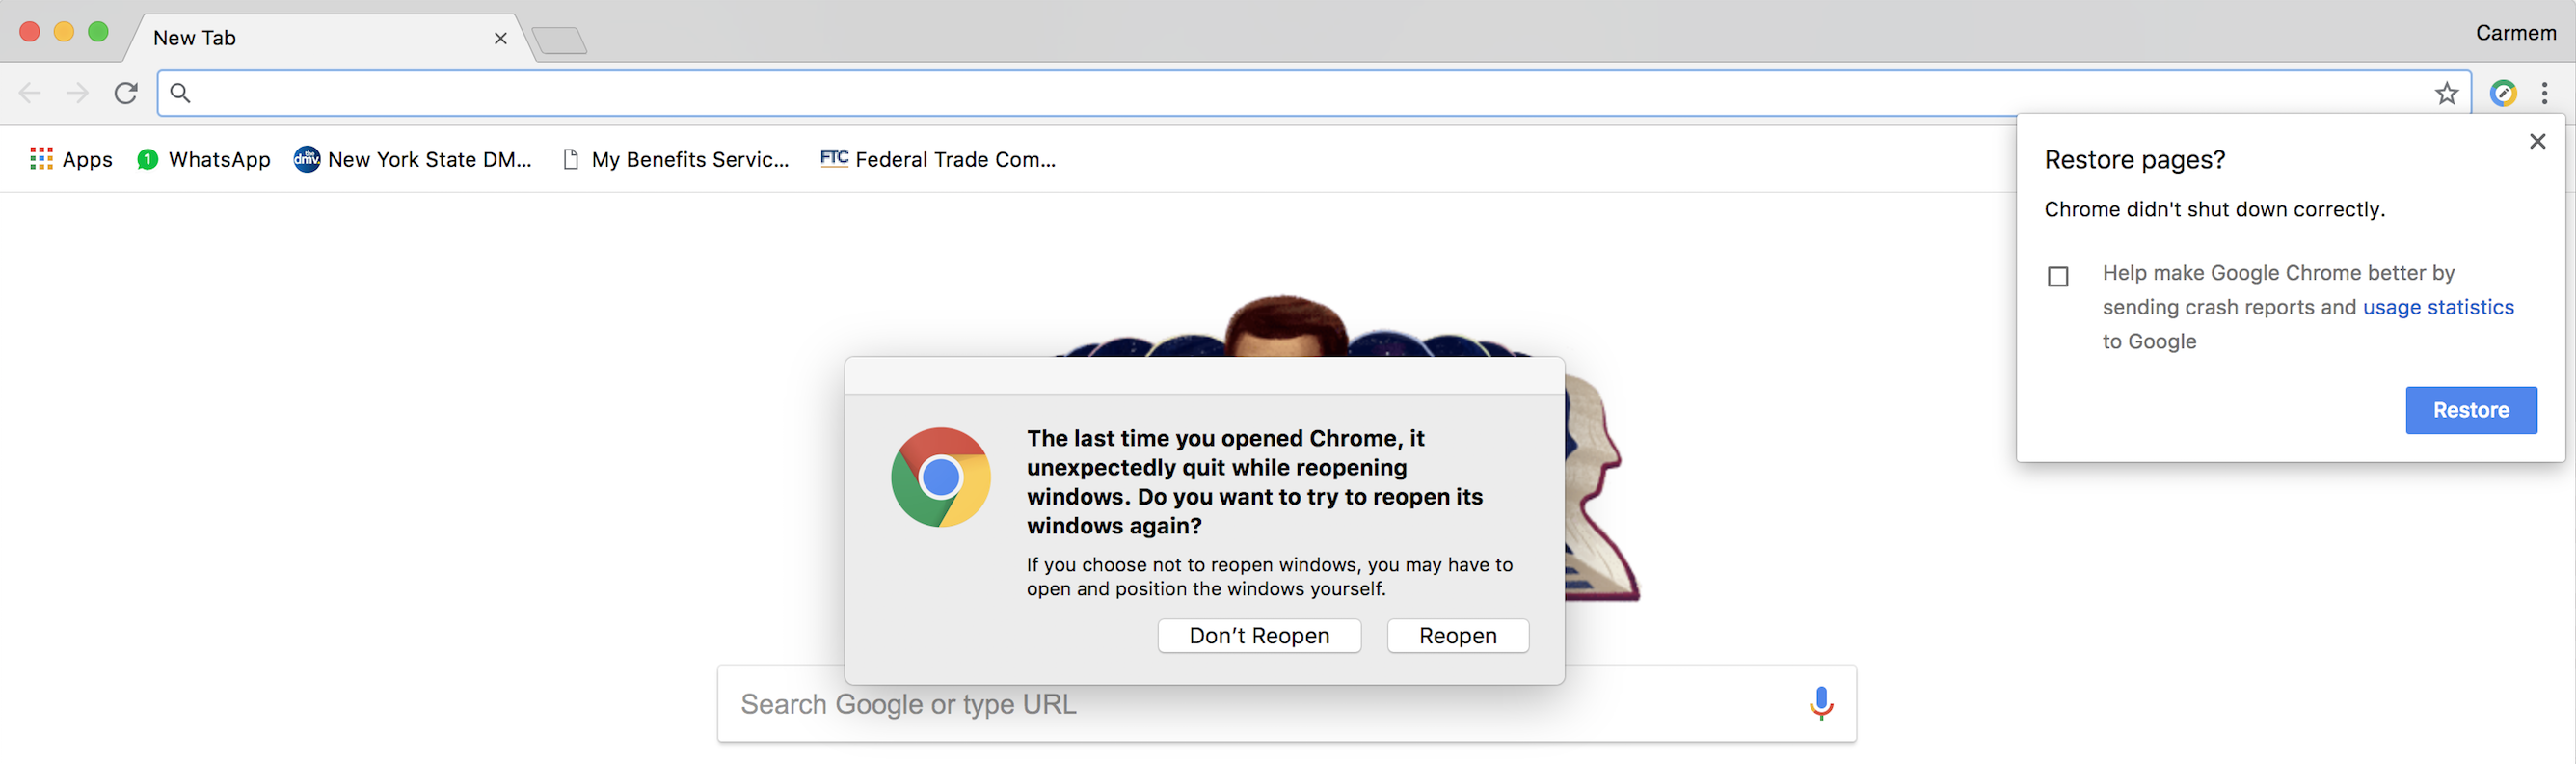 Chrome keeps crashing even after uninstall and reinstall on Mac